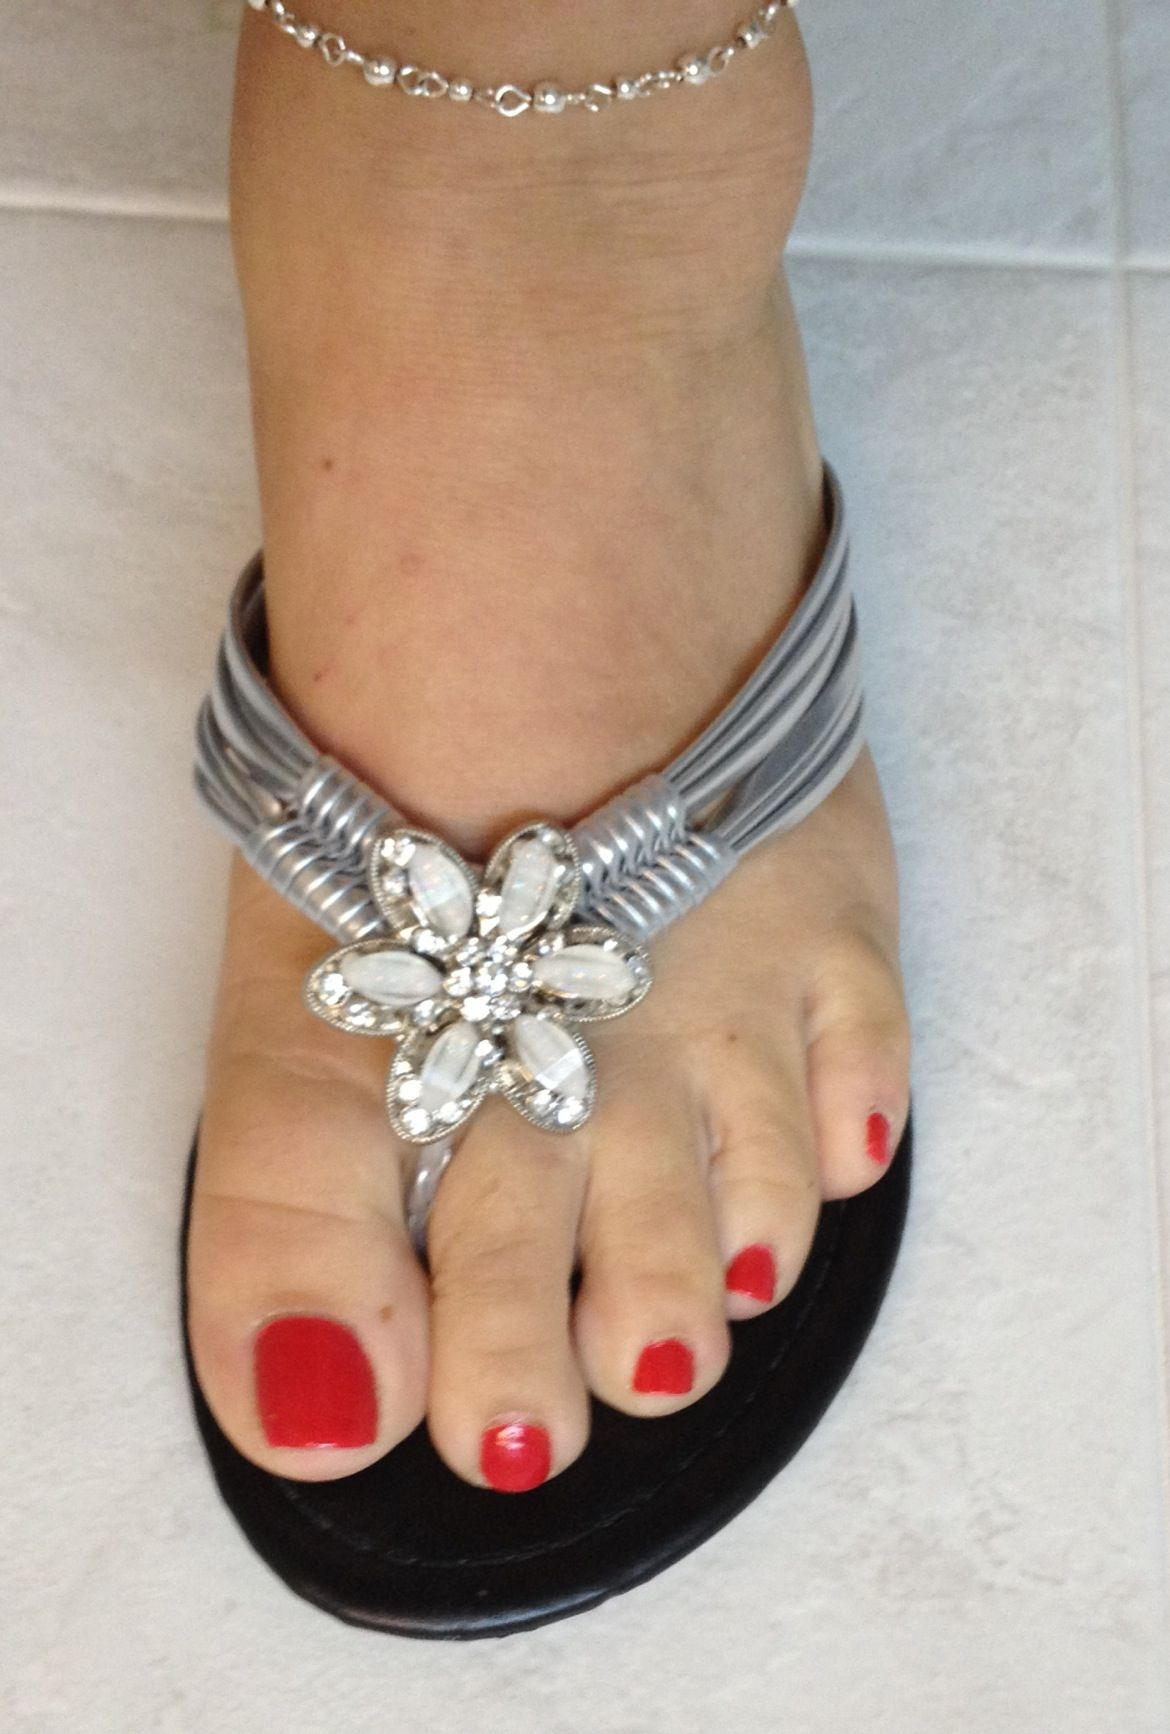 Cute sandals from charming Charlie's.